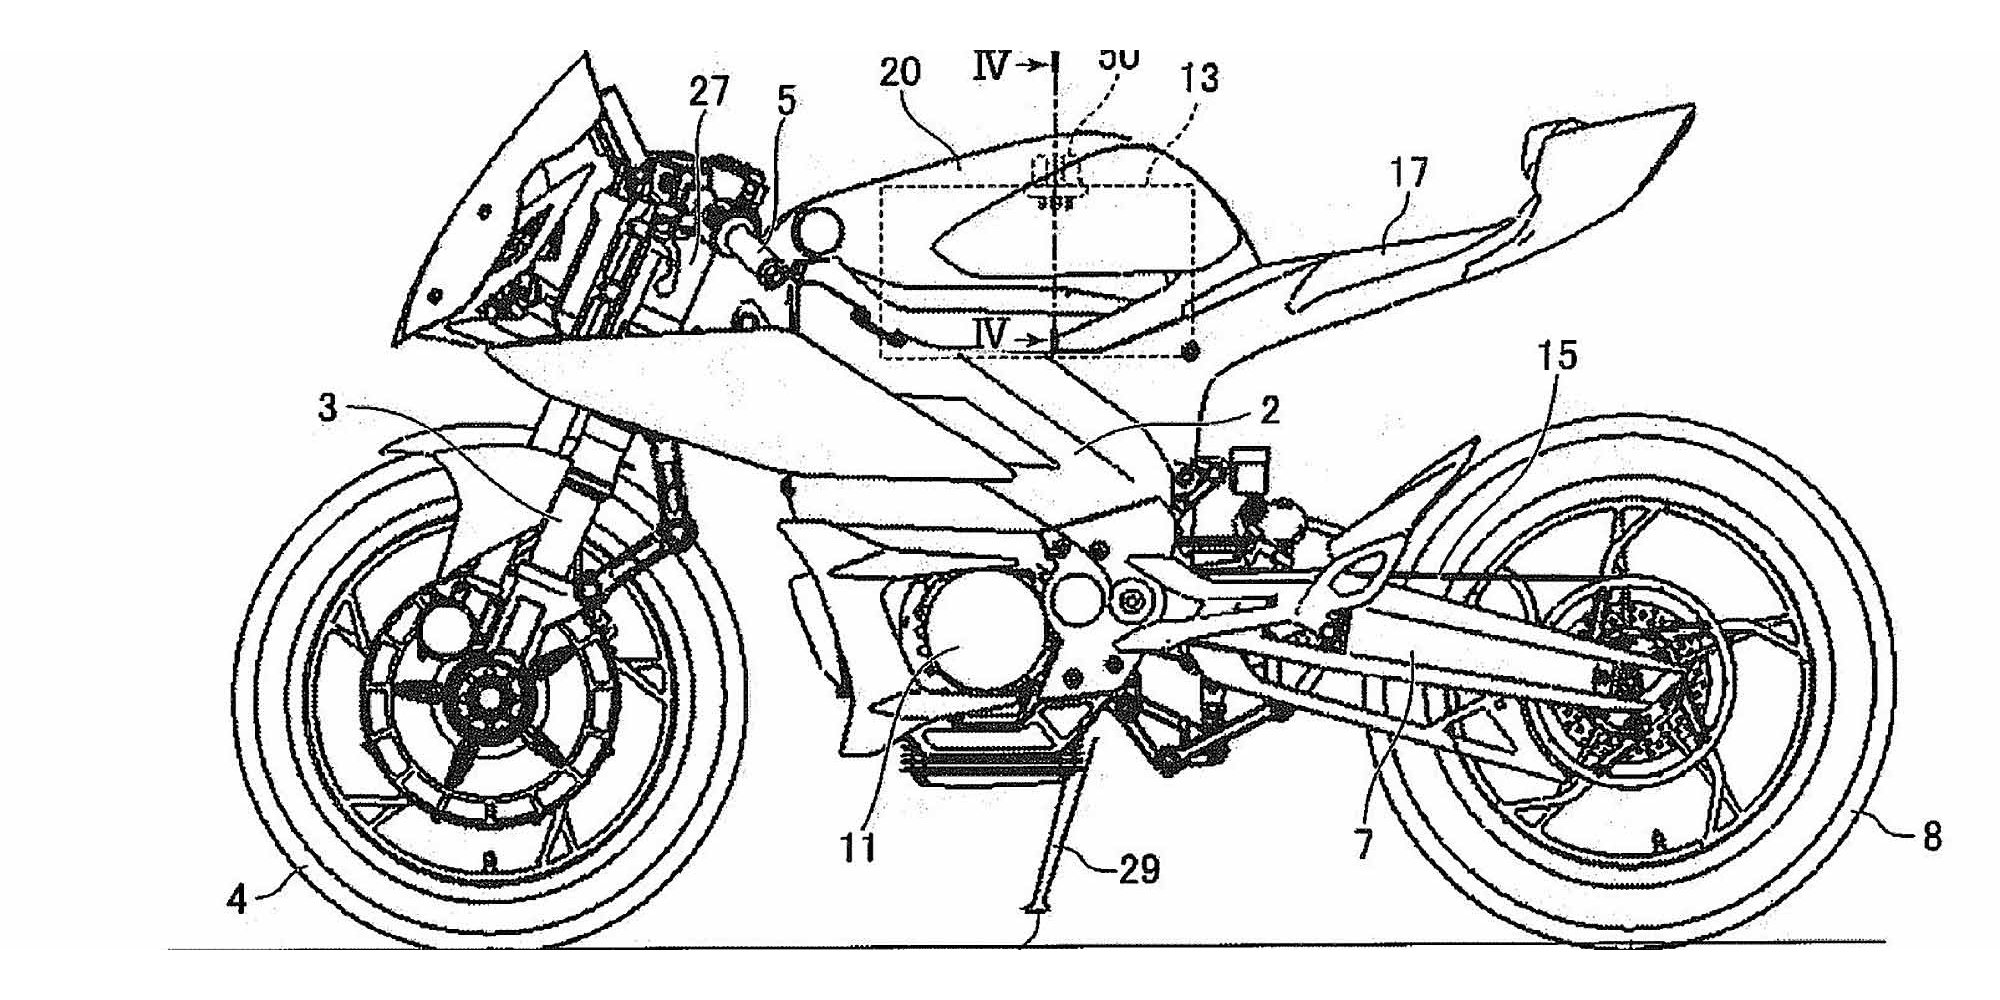 New Yamaha electric motorcycle patents show electric R1 superbike and electric MT-07